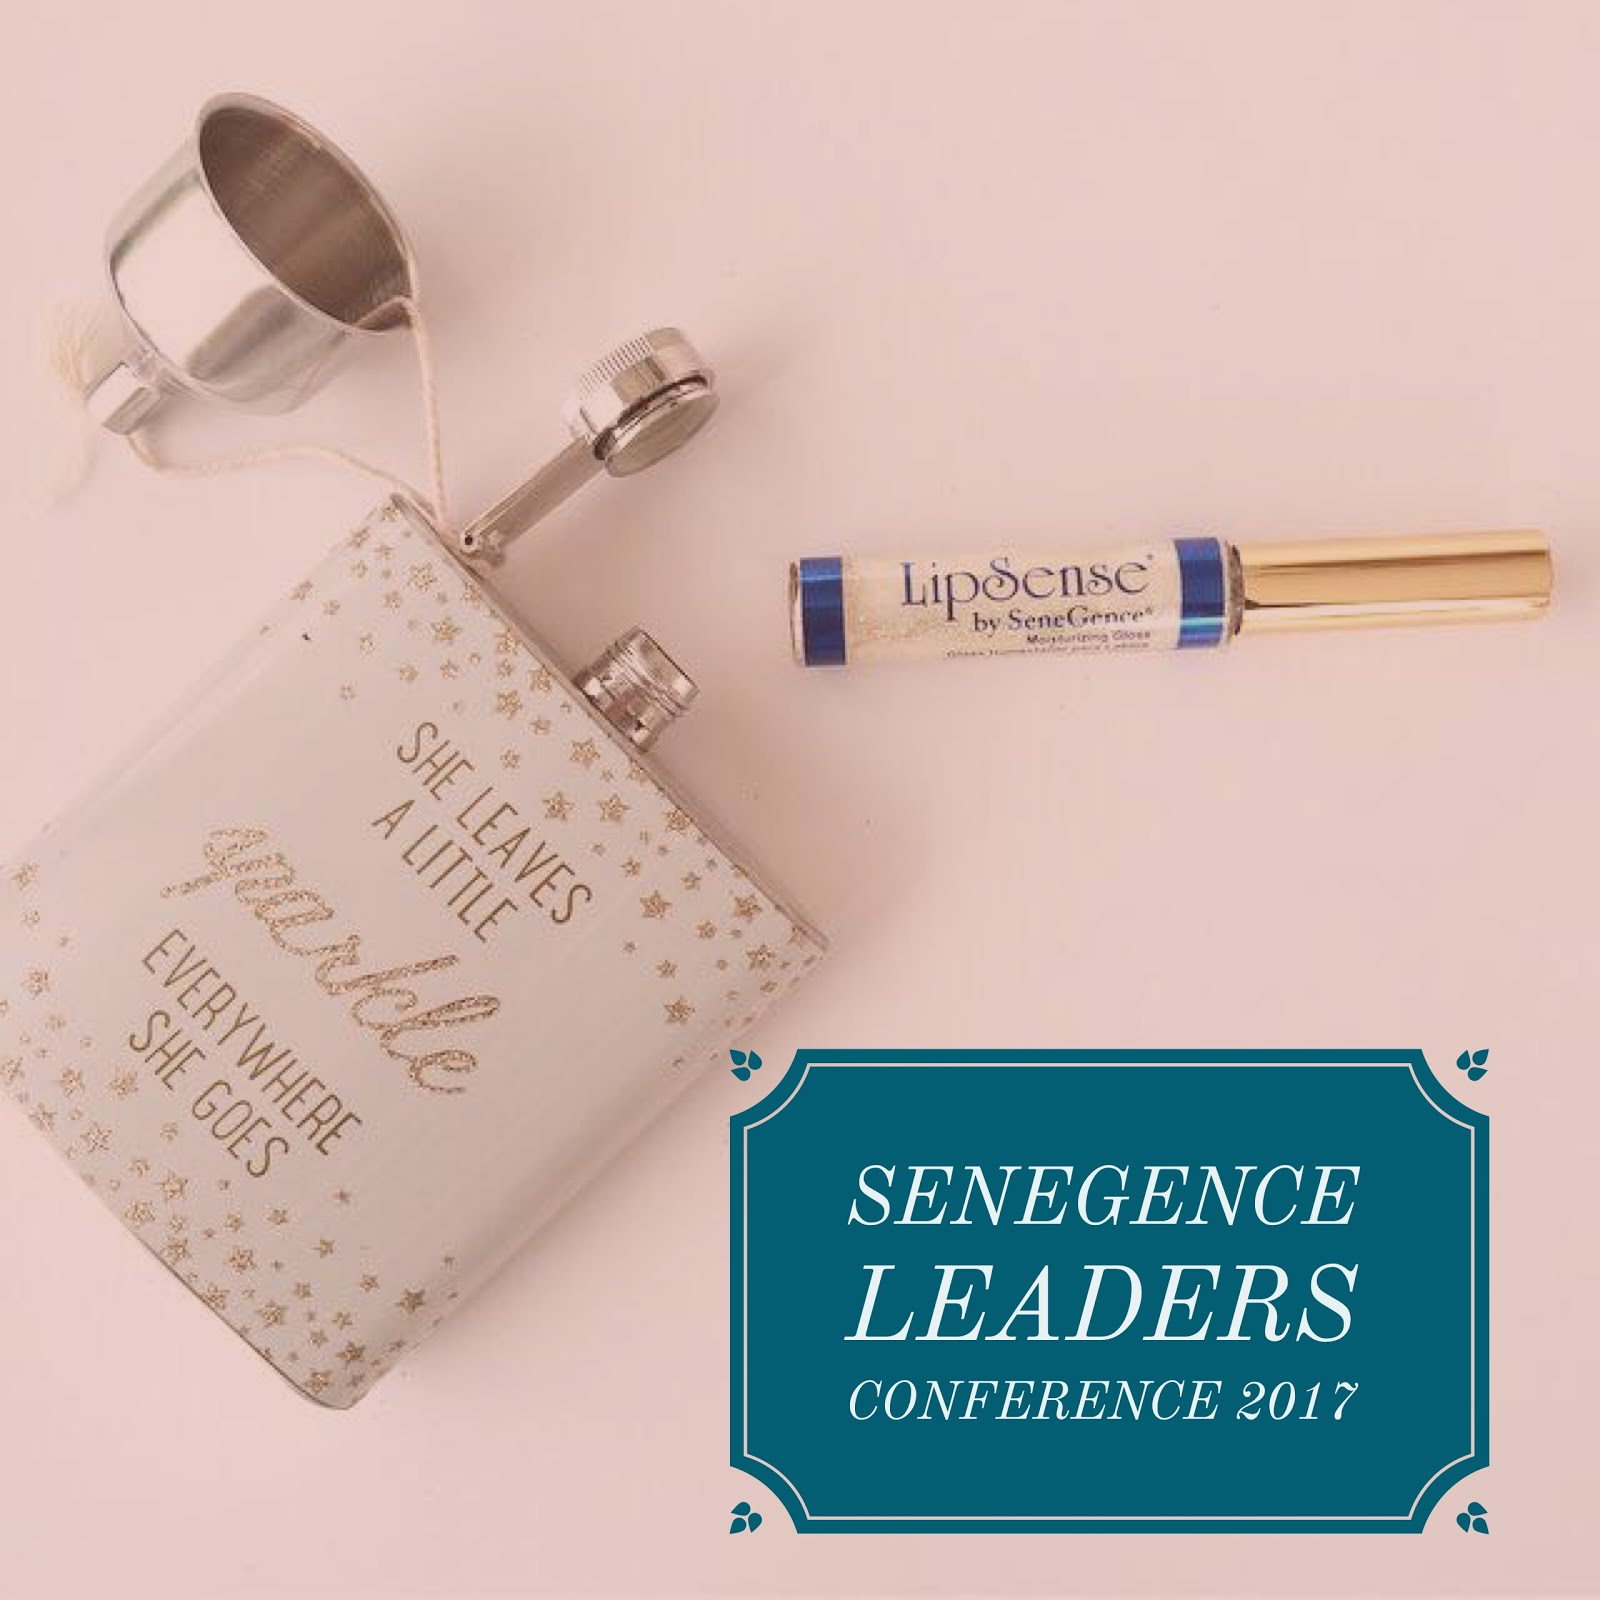 Senegence Leaders Conference